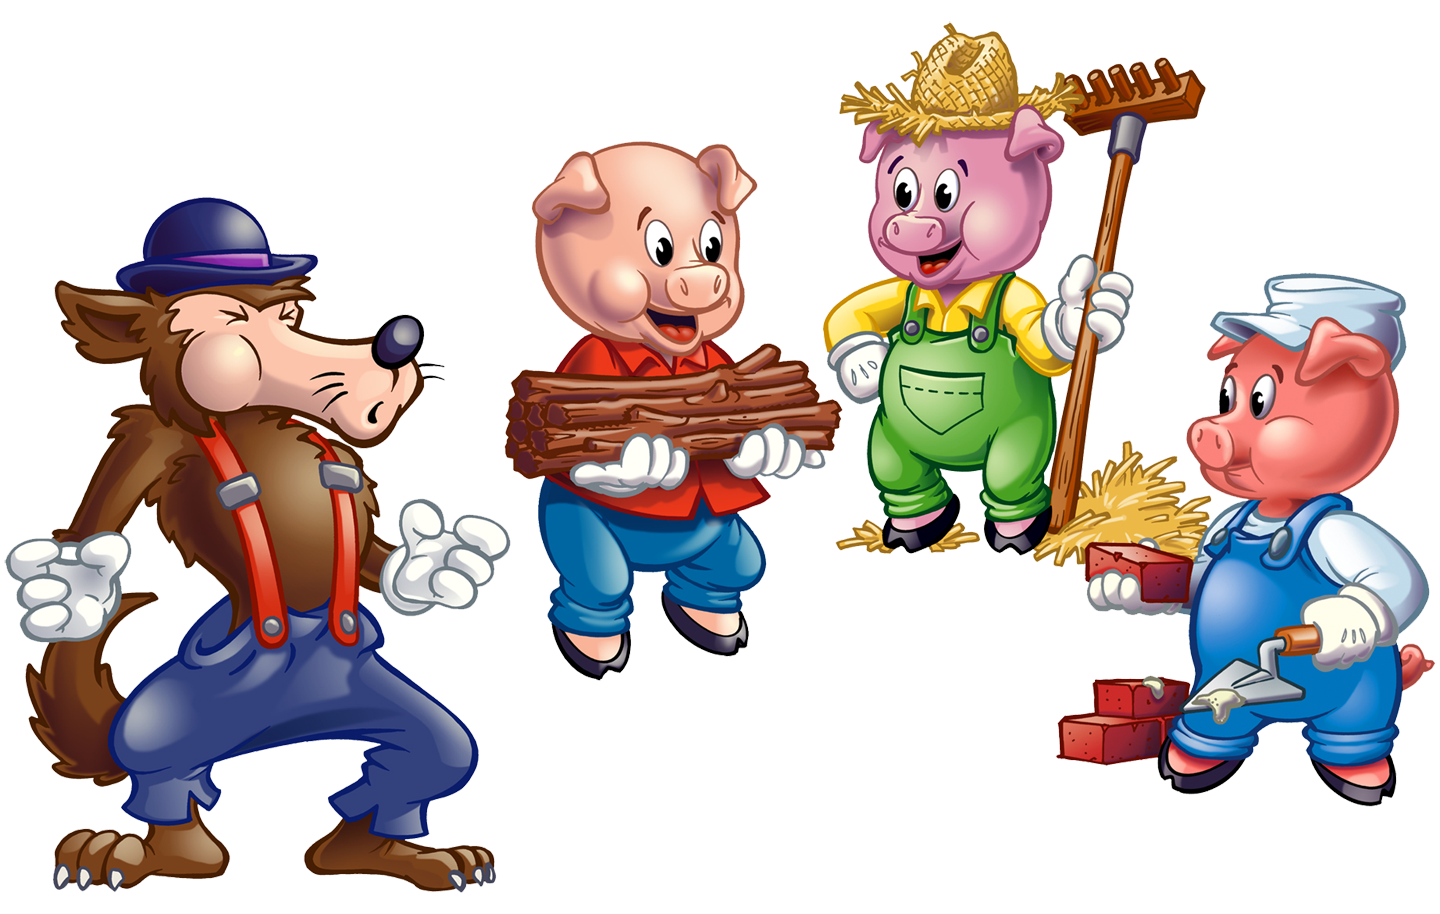 Pork drawing bad pig. Little pigs http